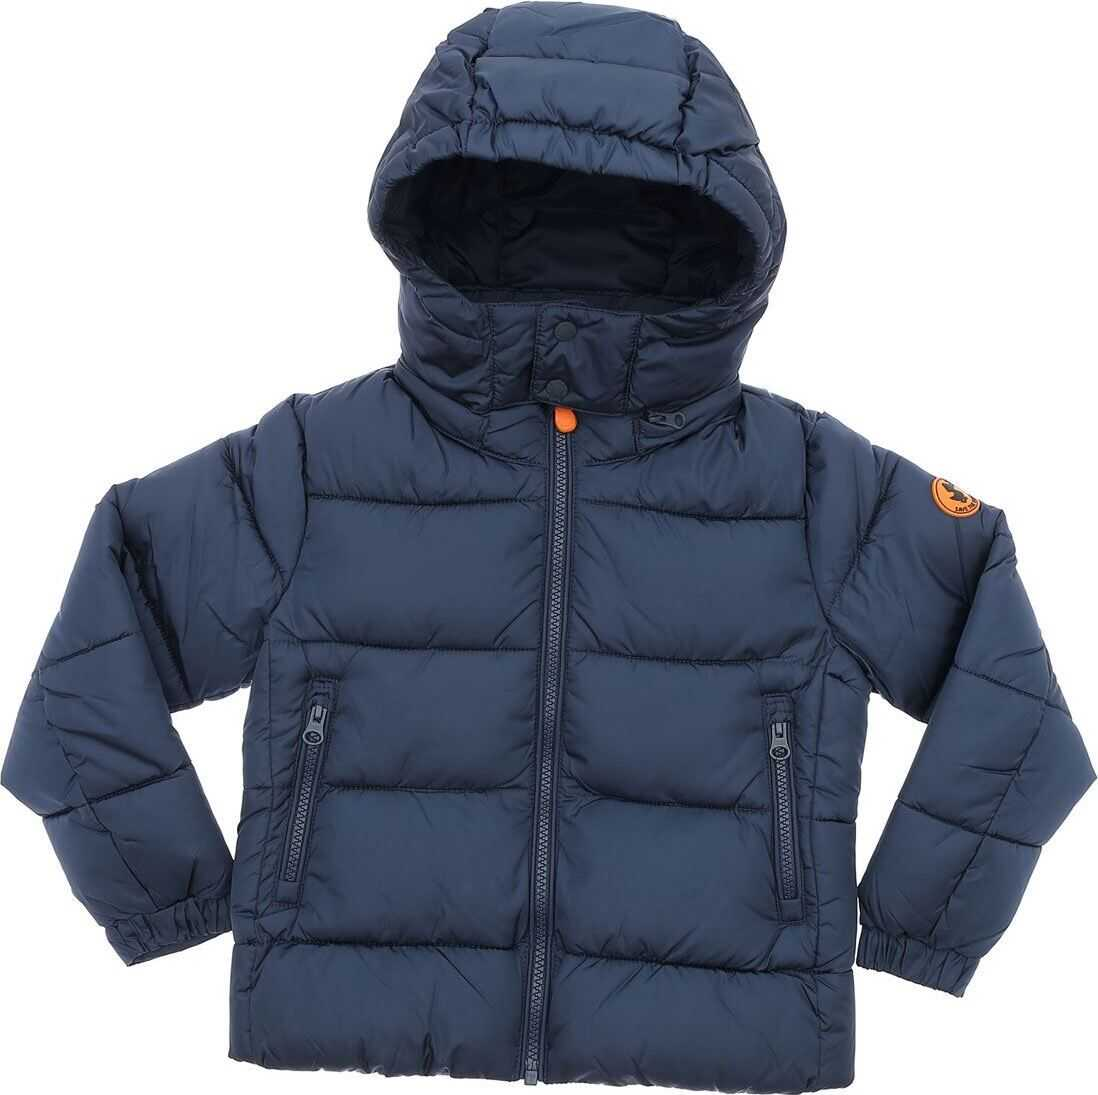 Mega Down Jacket In Dark Blue Color thumbnail